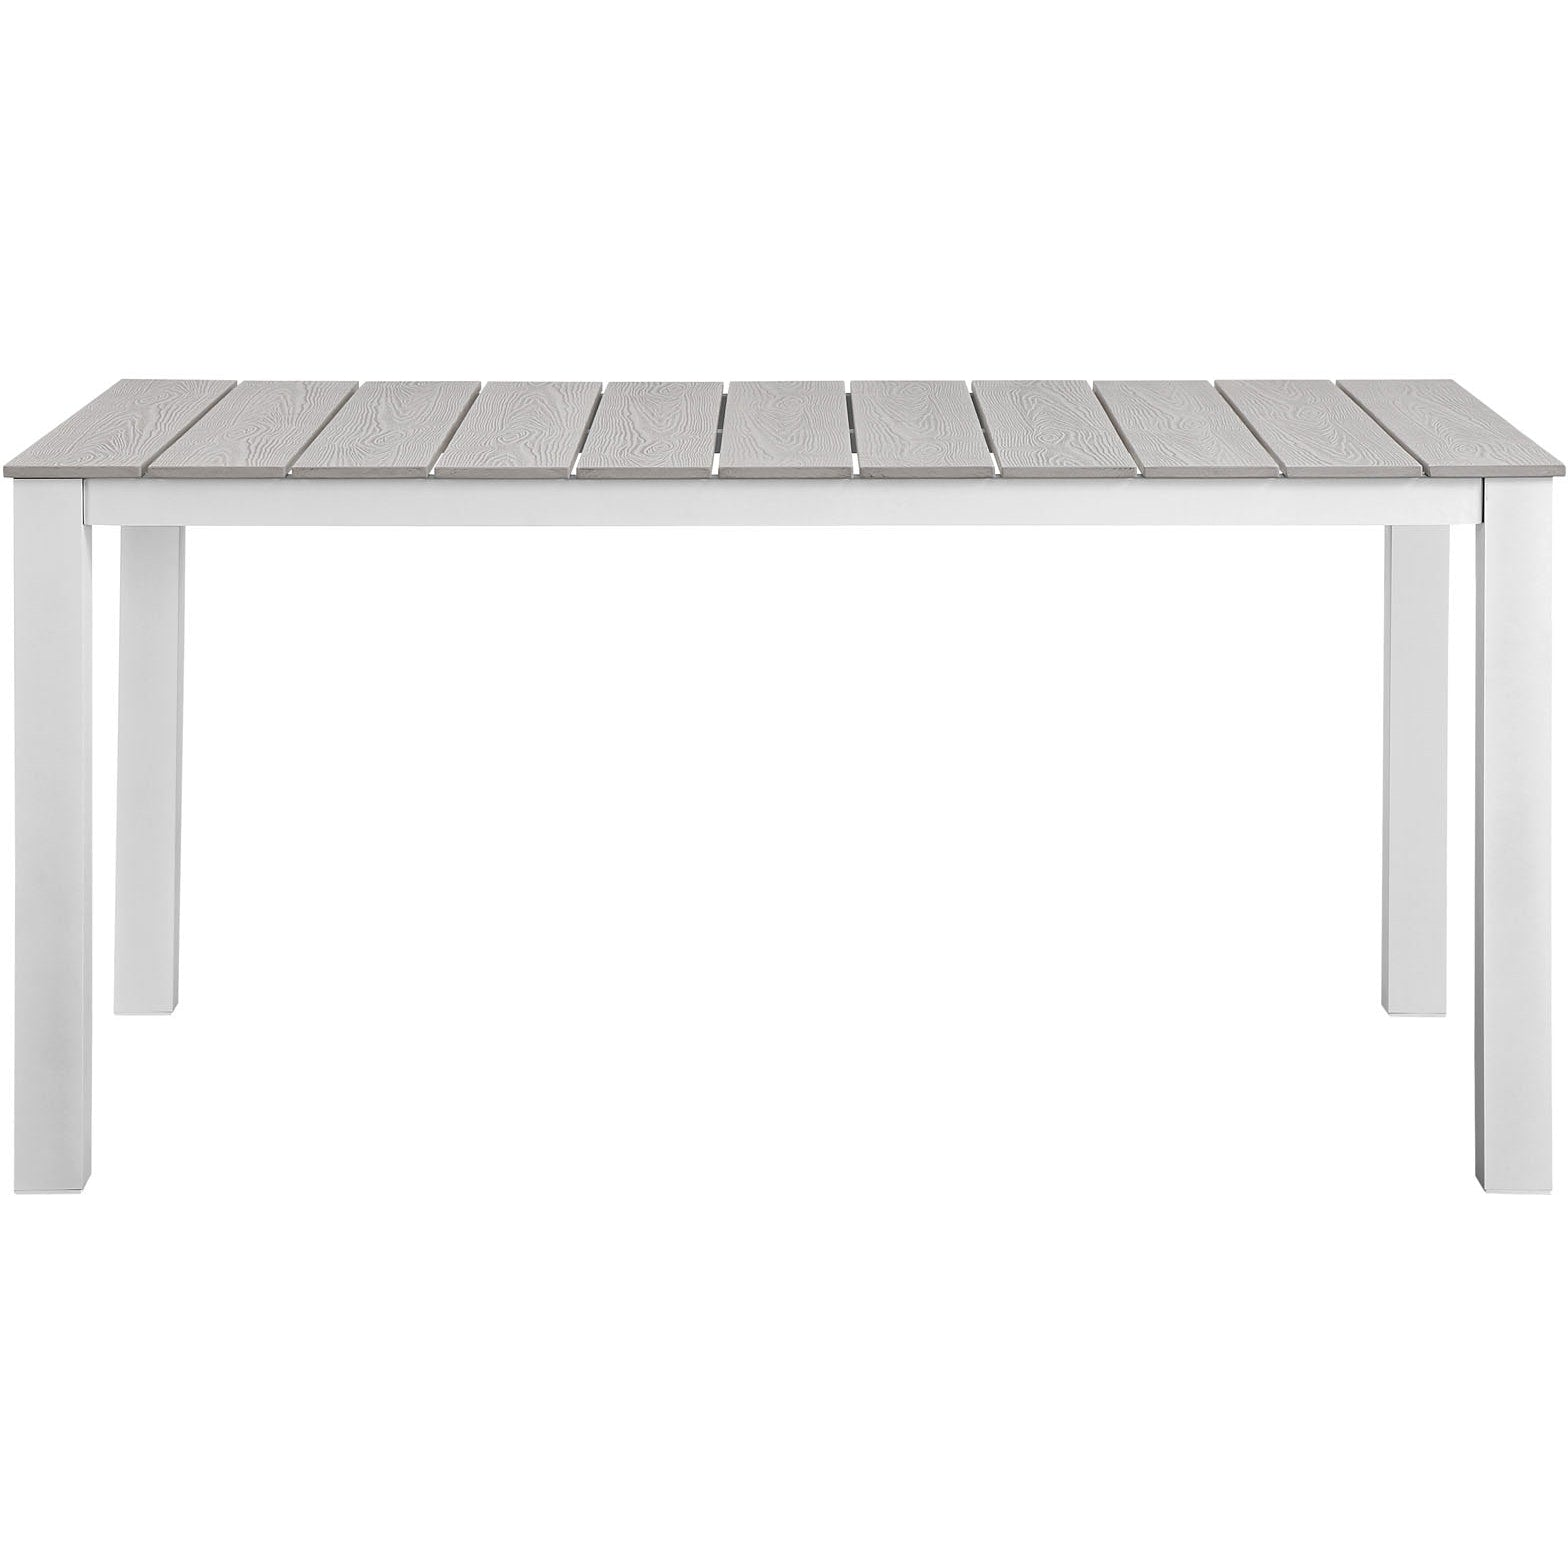 Junction 7 Piece Outdoor Patio Dining Set - Gray White